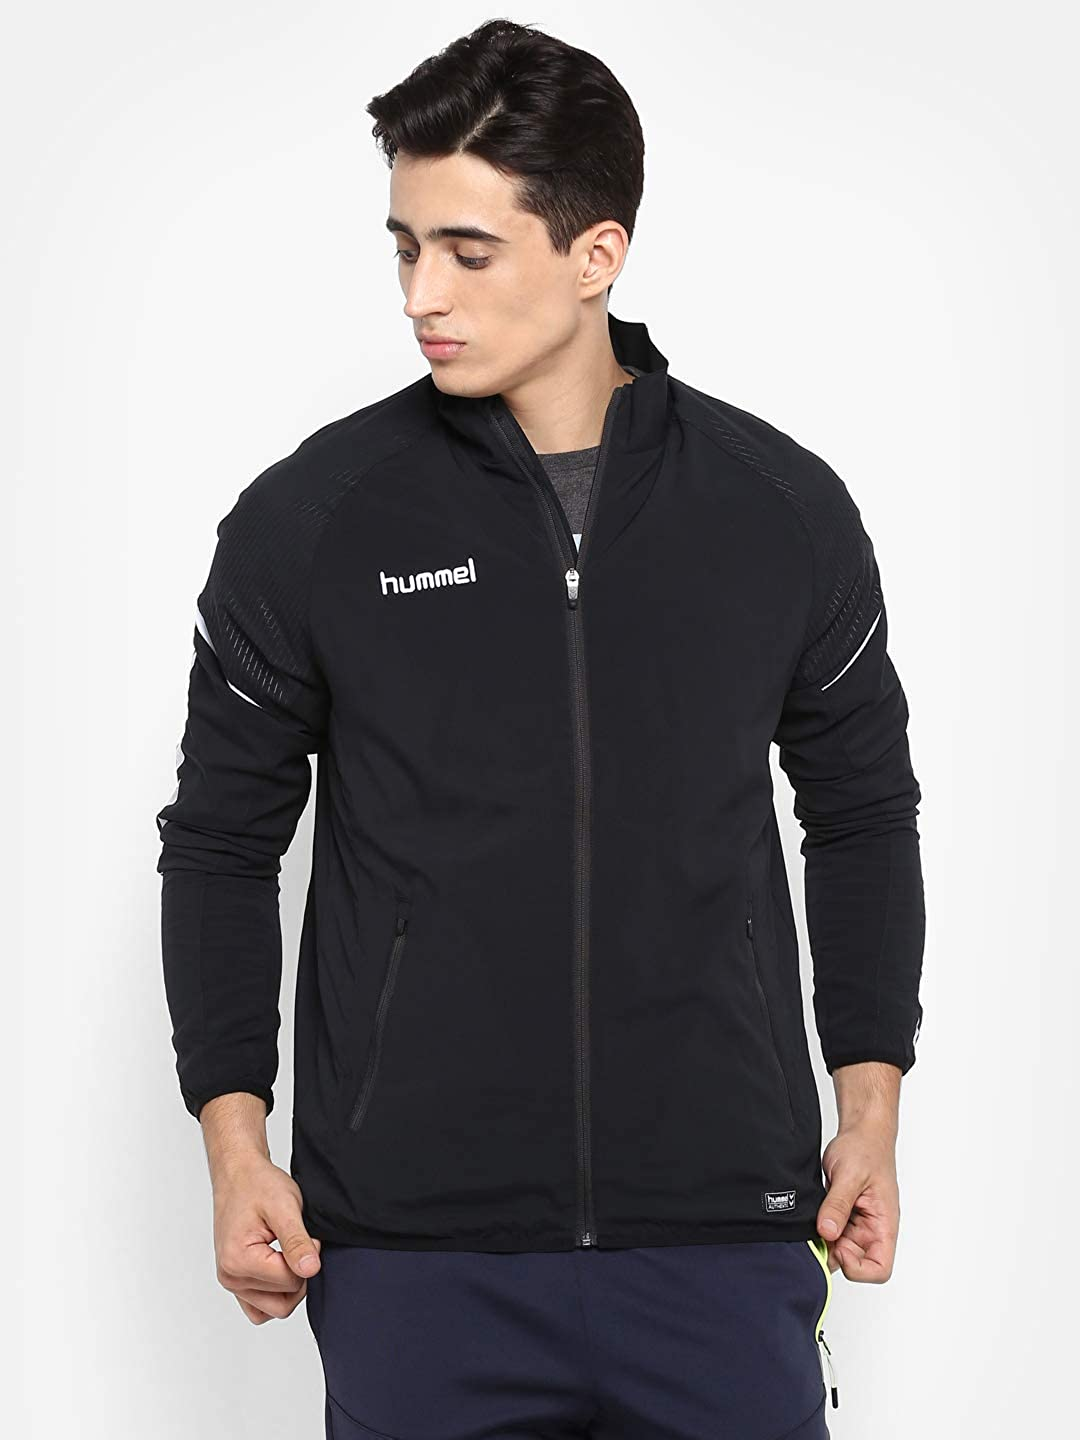 Charge Micro Zip Jacket Homme hummel Auth